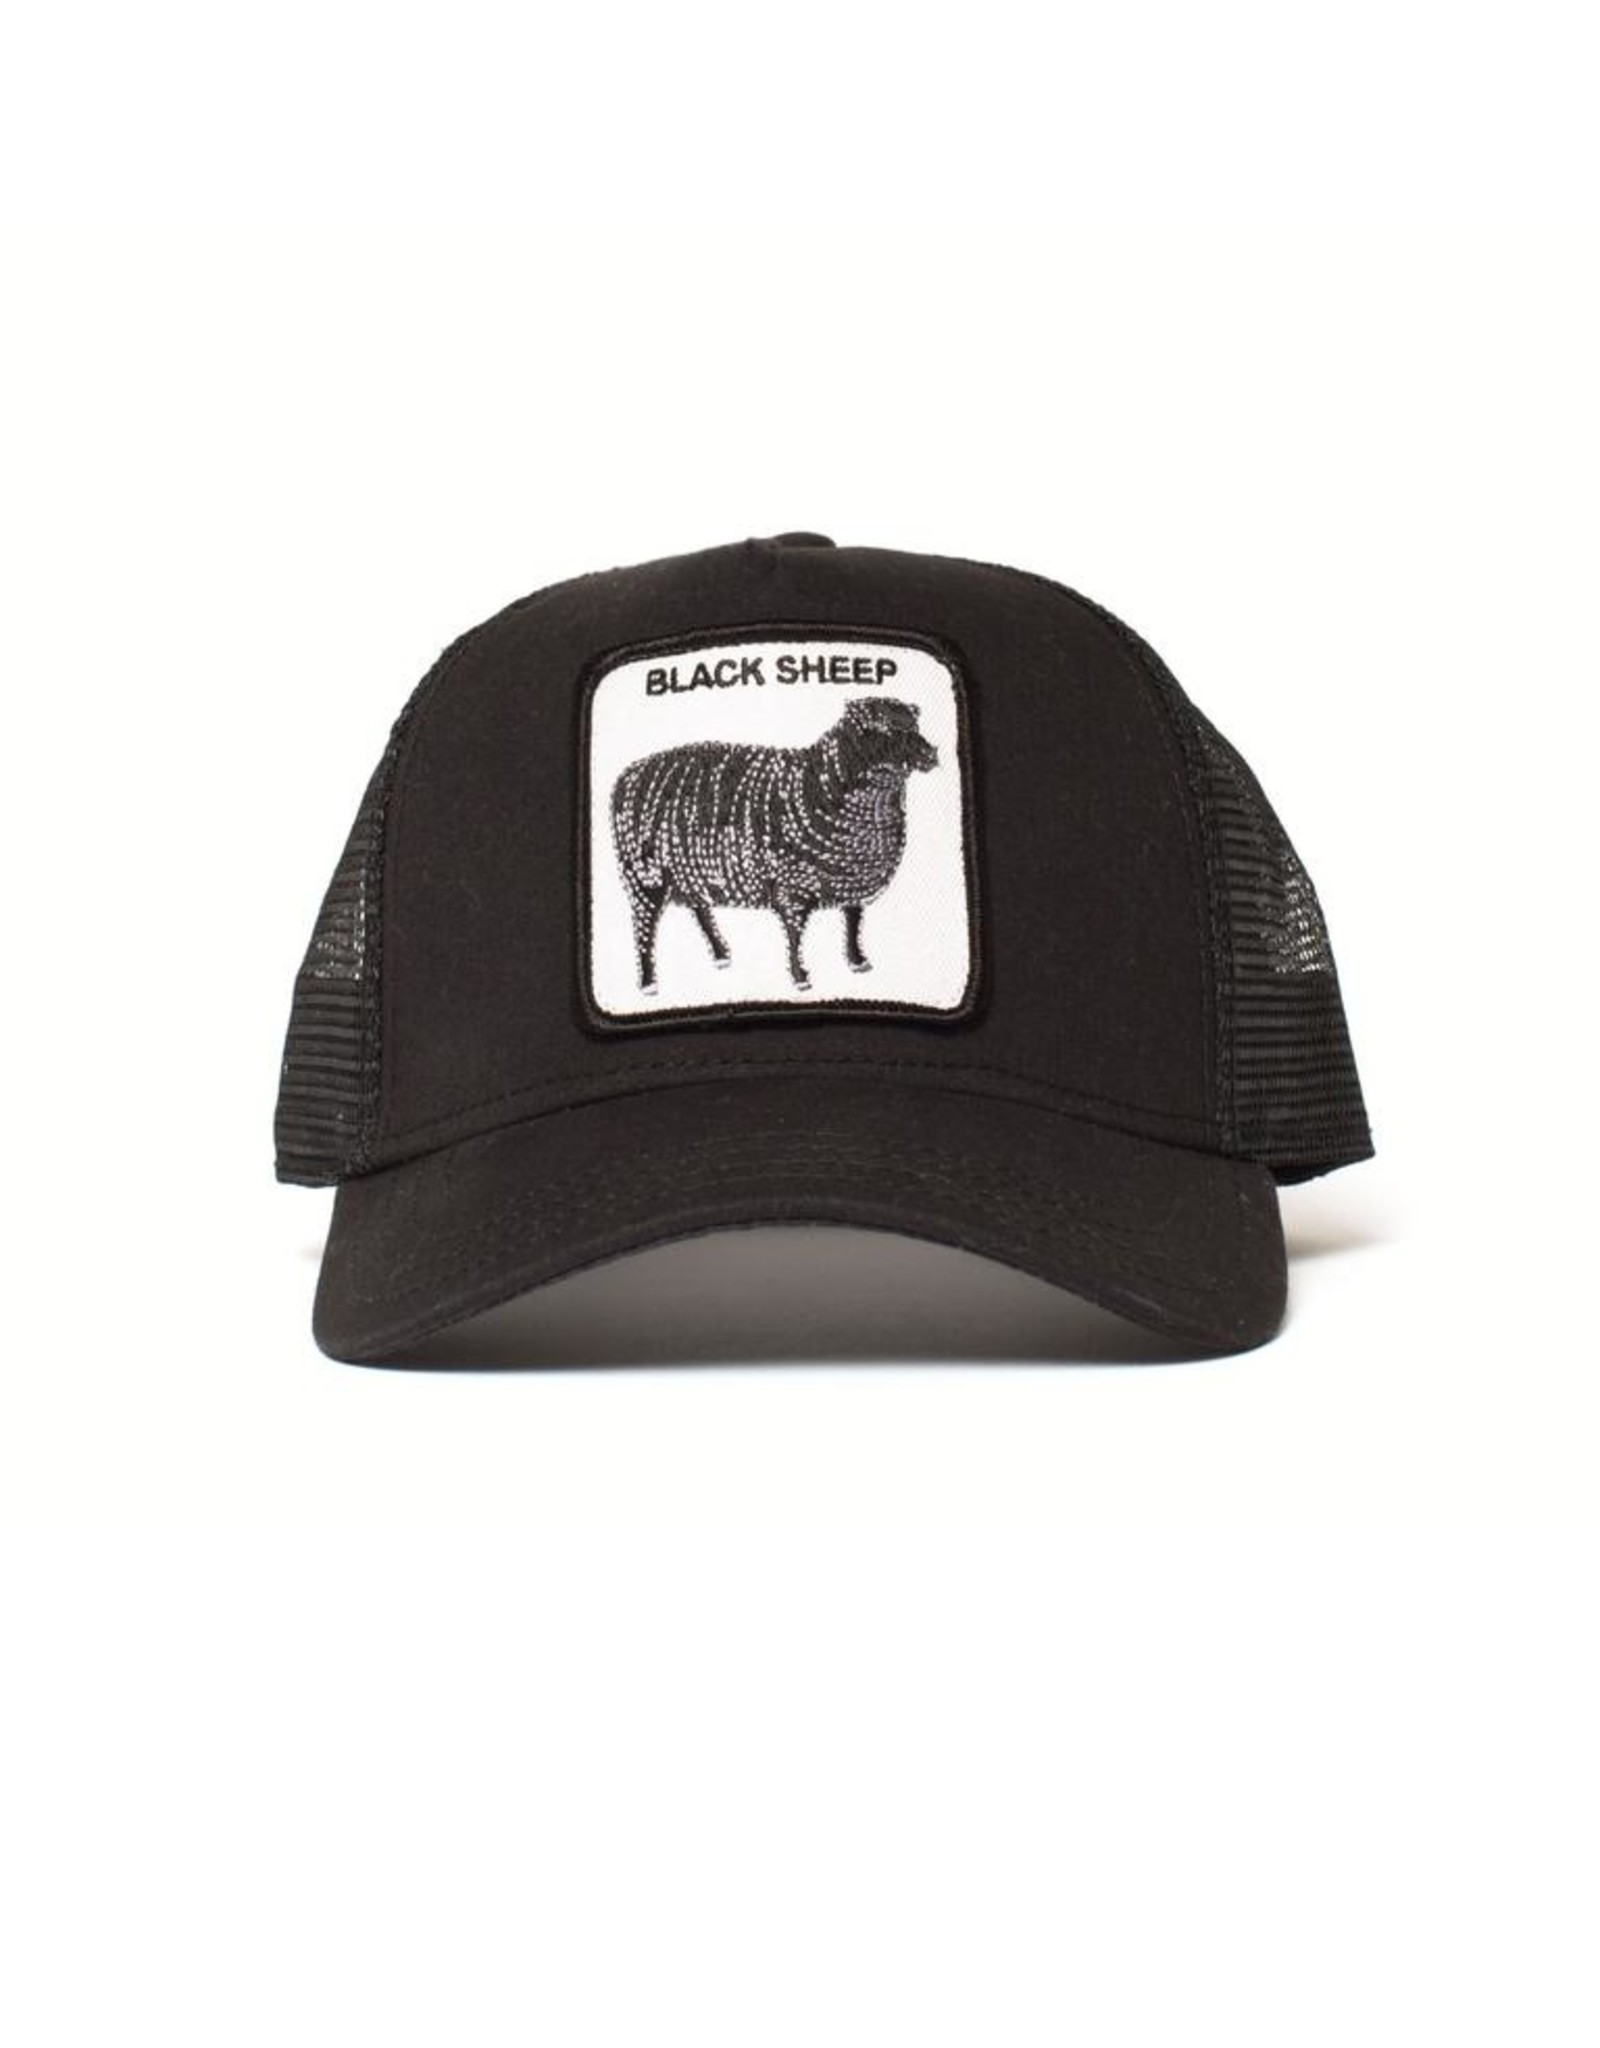 Goorin Bros Naughty Lamp/Black Sheep Goorin Bros